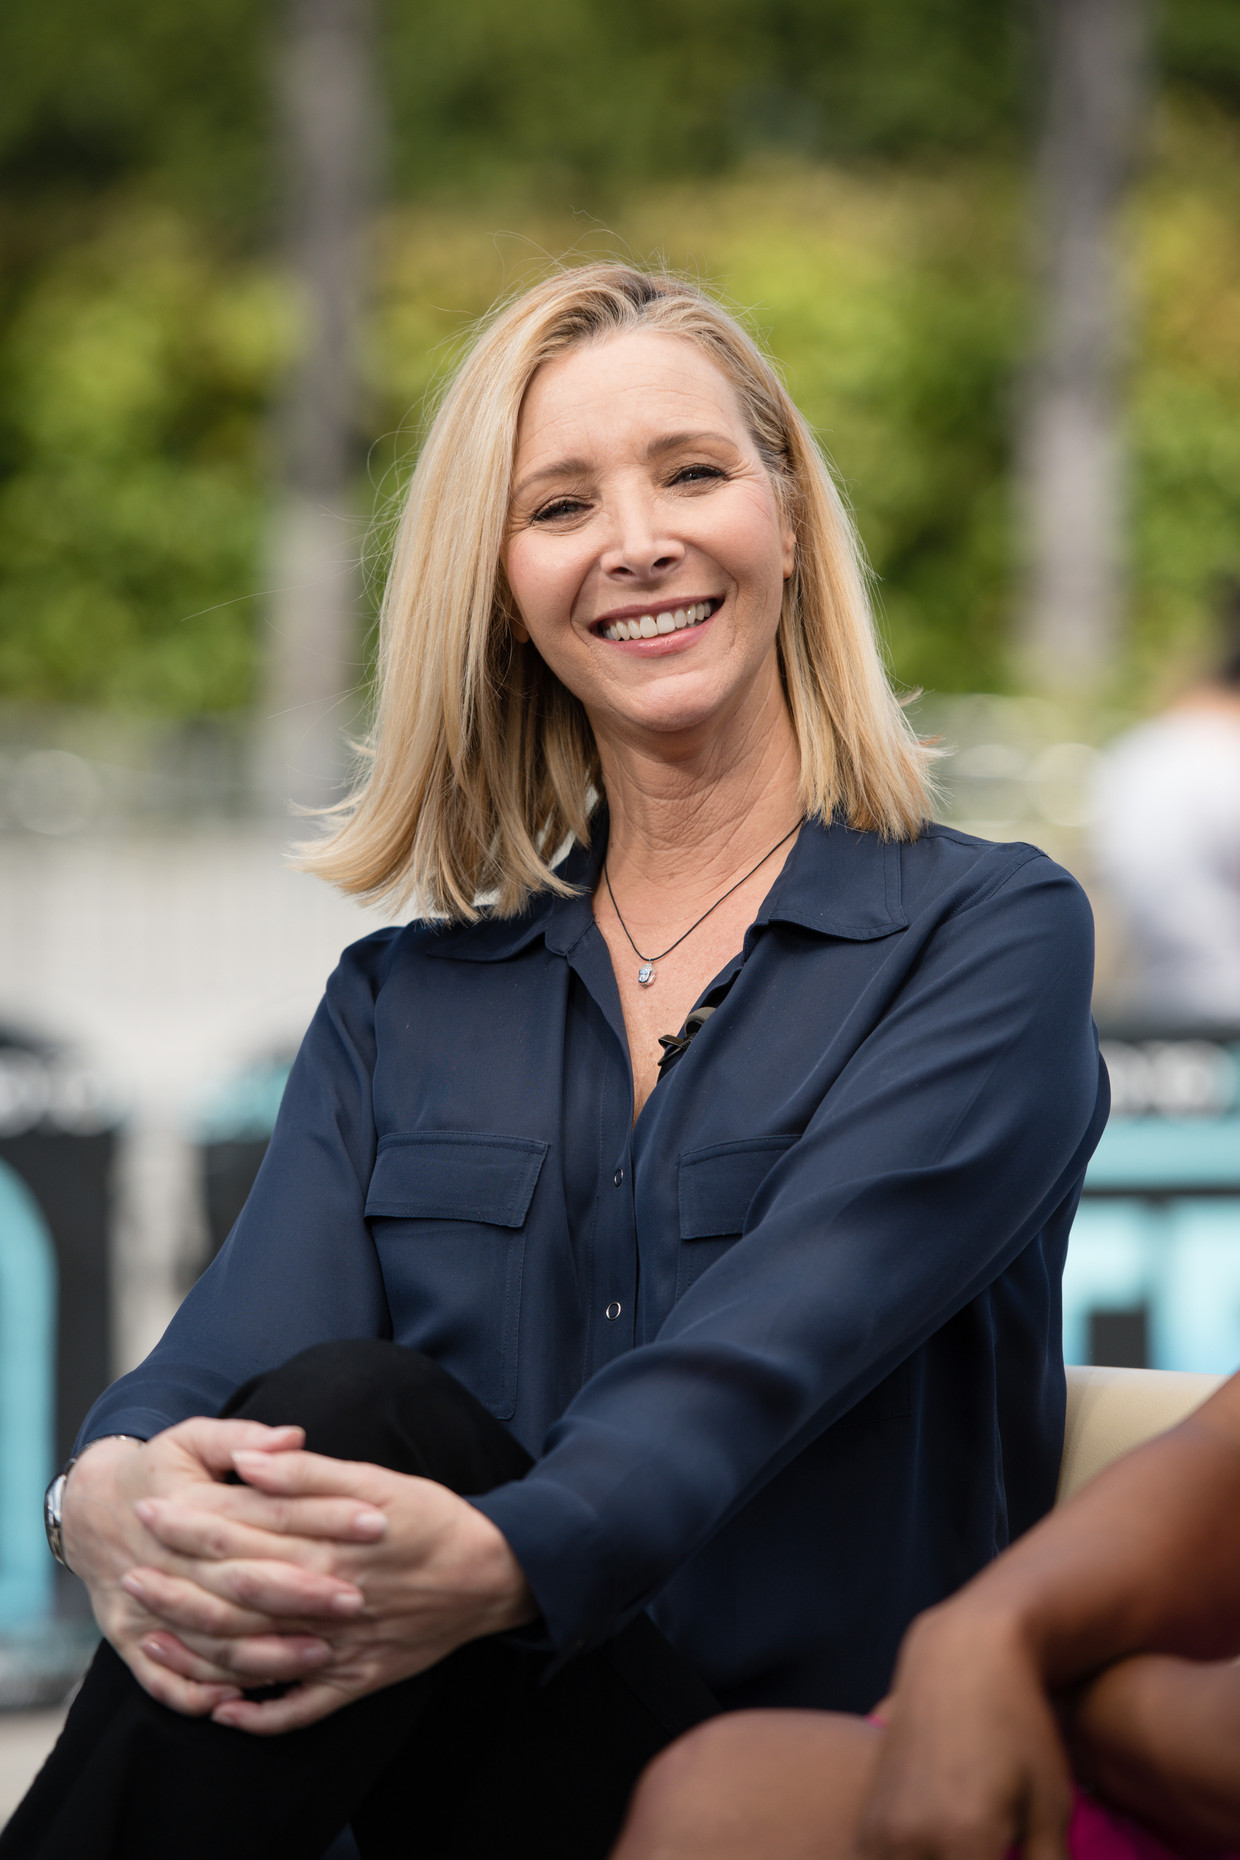 Actrice Lisa Kudrow Beeld Getty